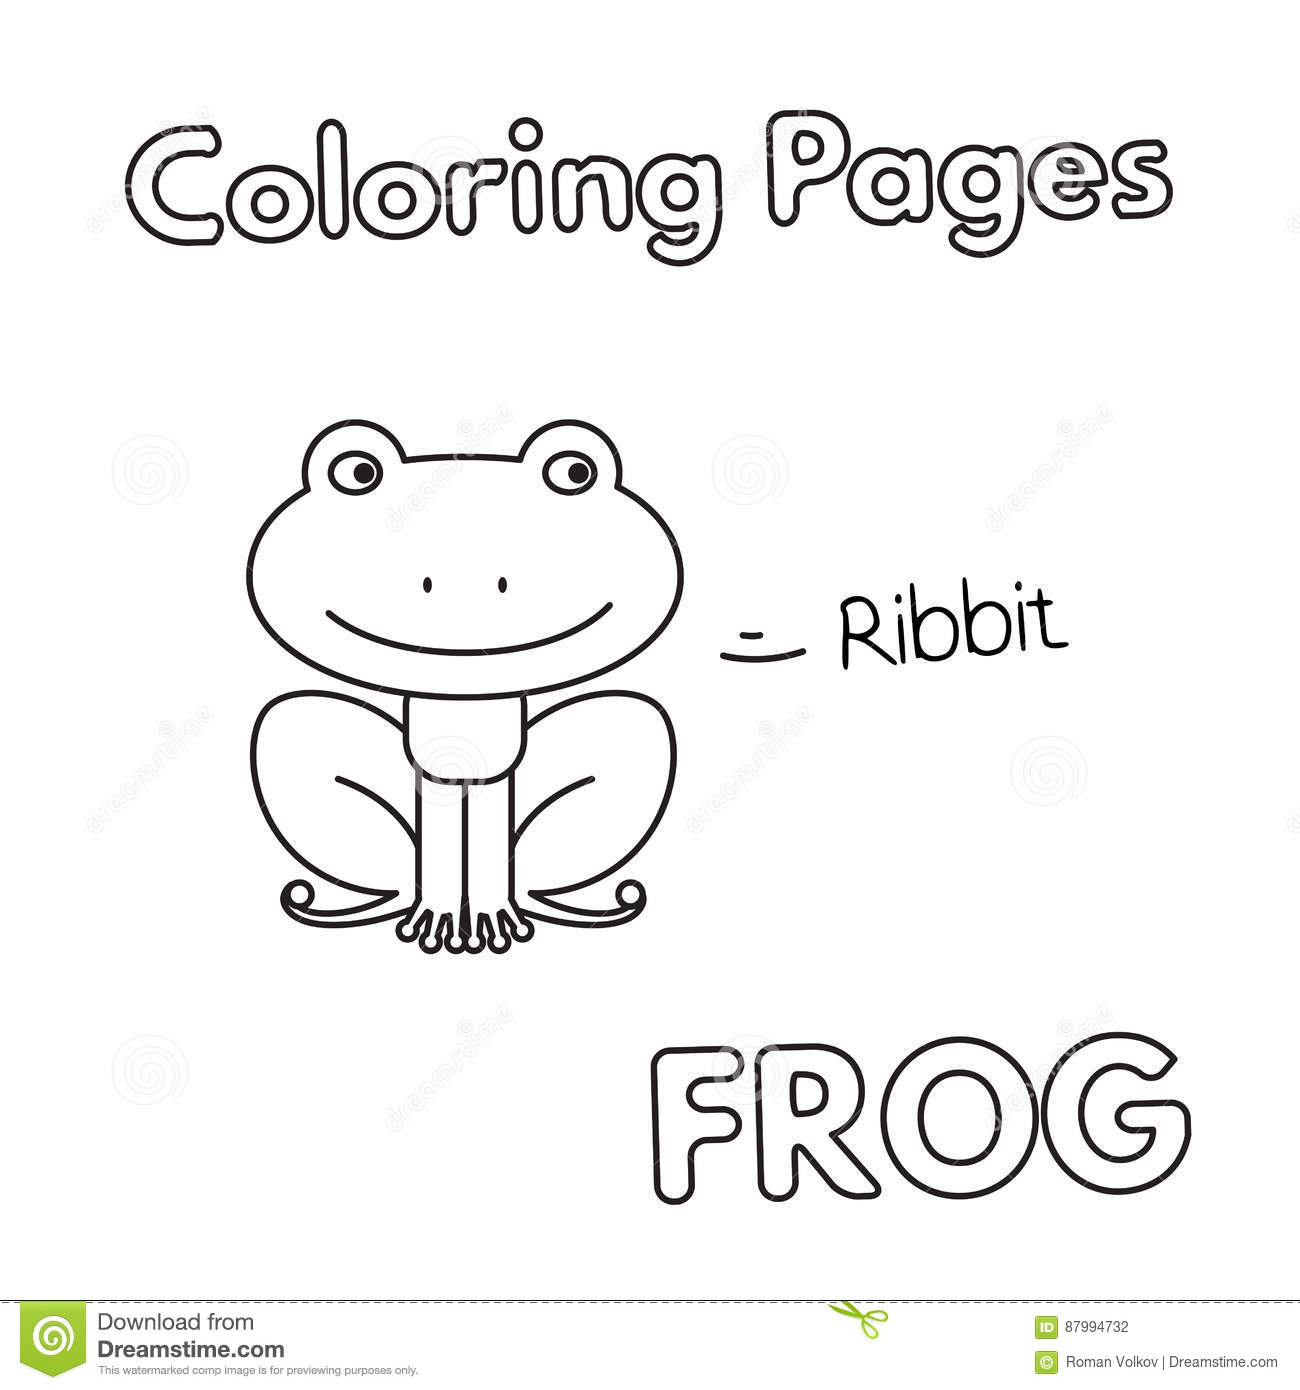 frog-coloring-book-pages | | BestAppsForKids.com | 1390x1300